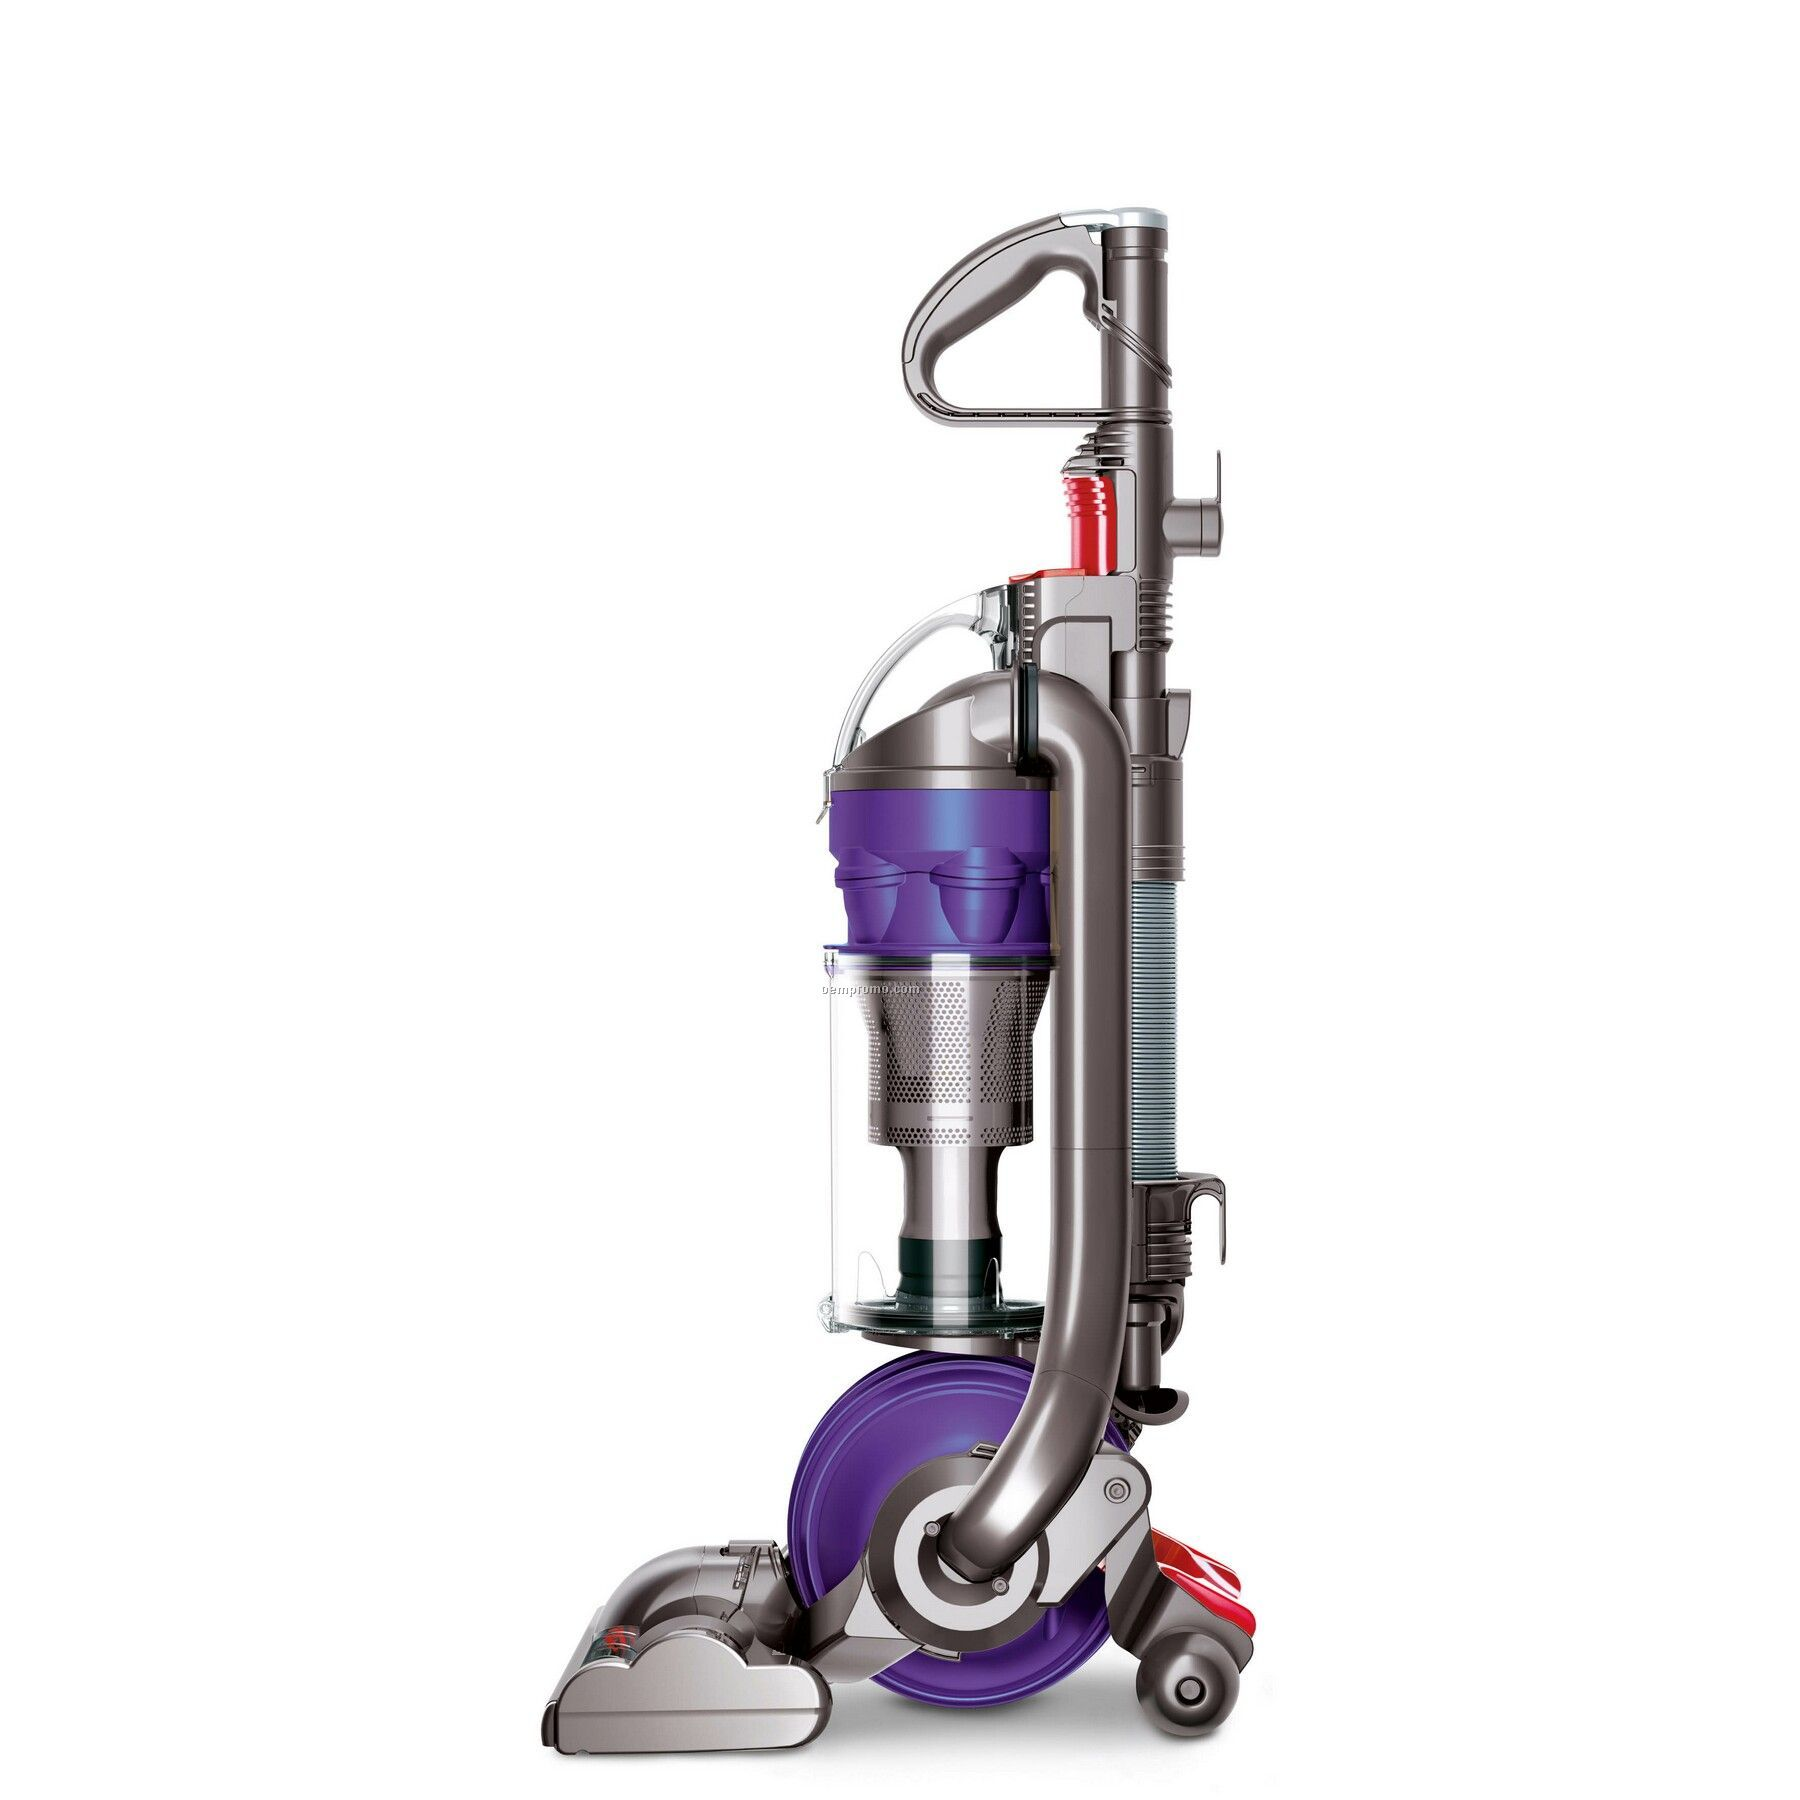 Dyson Dc24 Dyson Ball Animal,China Wholesale,Homecare and Houseware